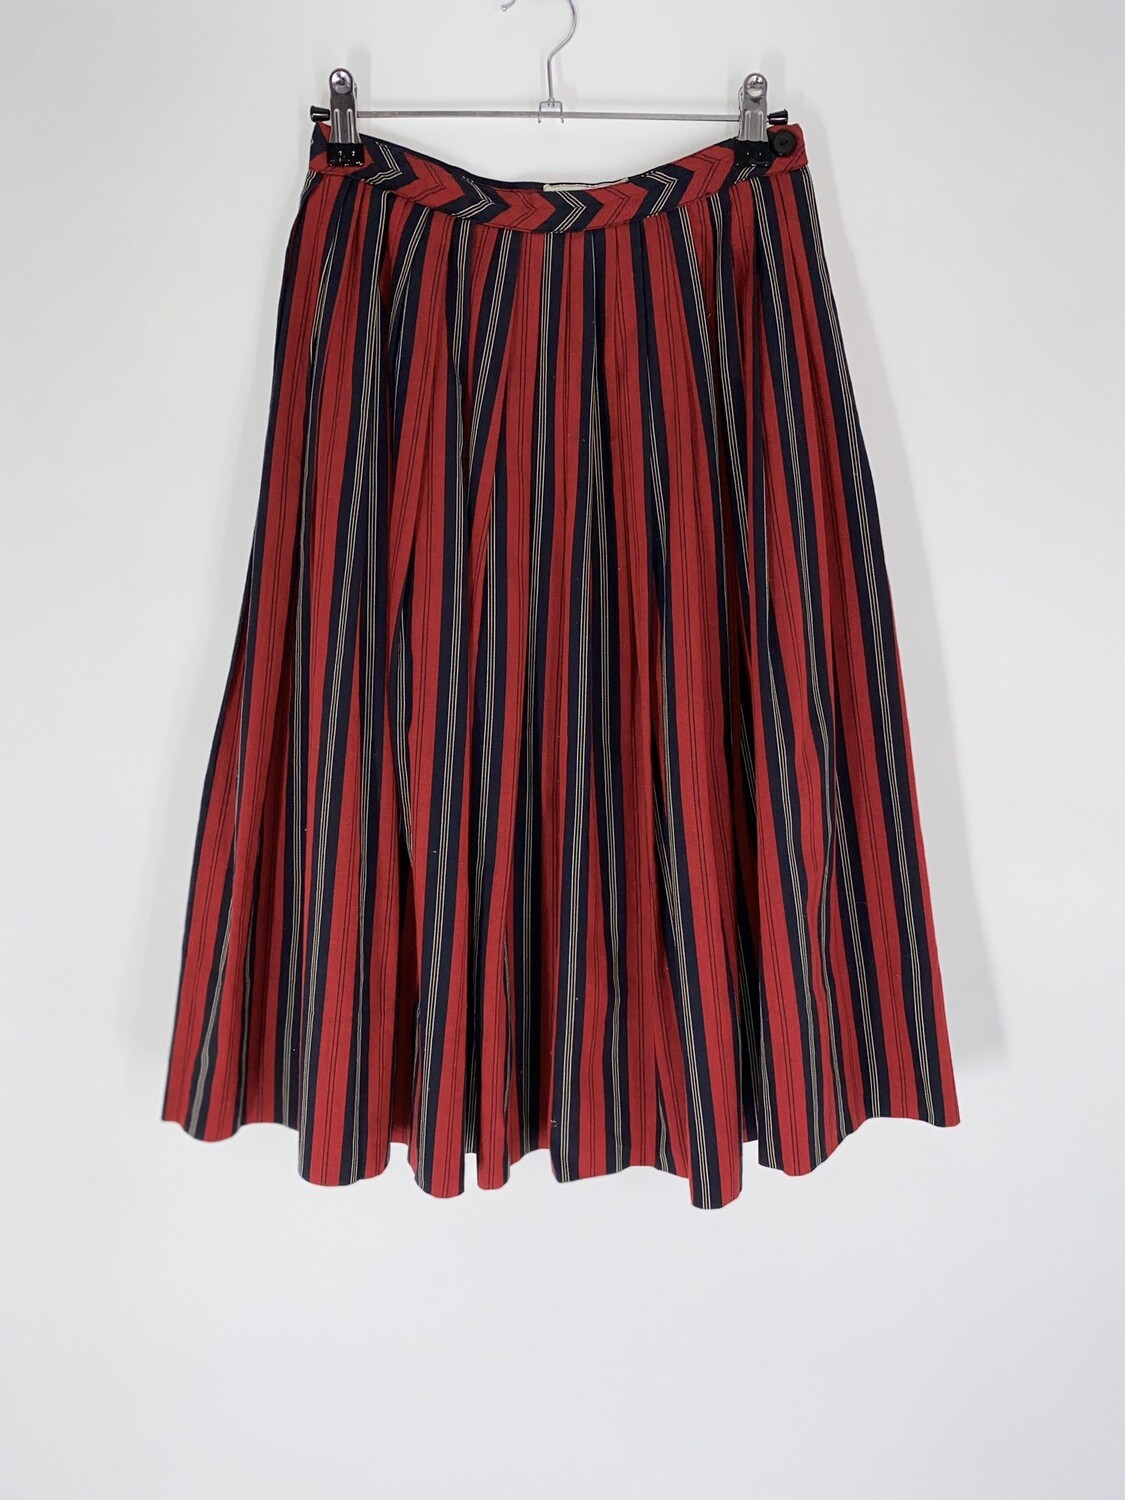 50's Miss Pat Striped Skirt Size S